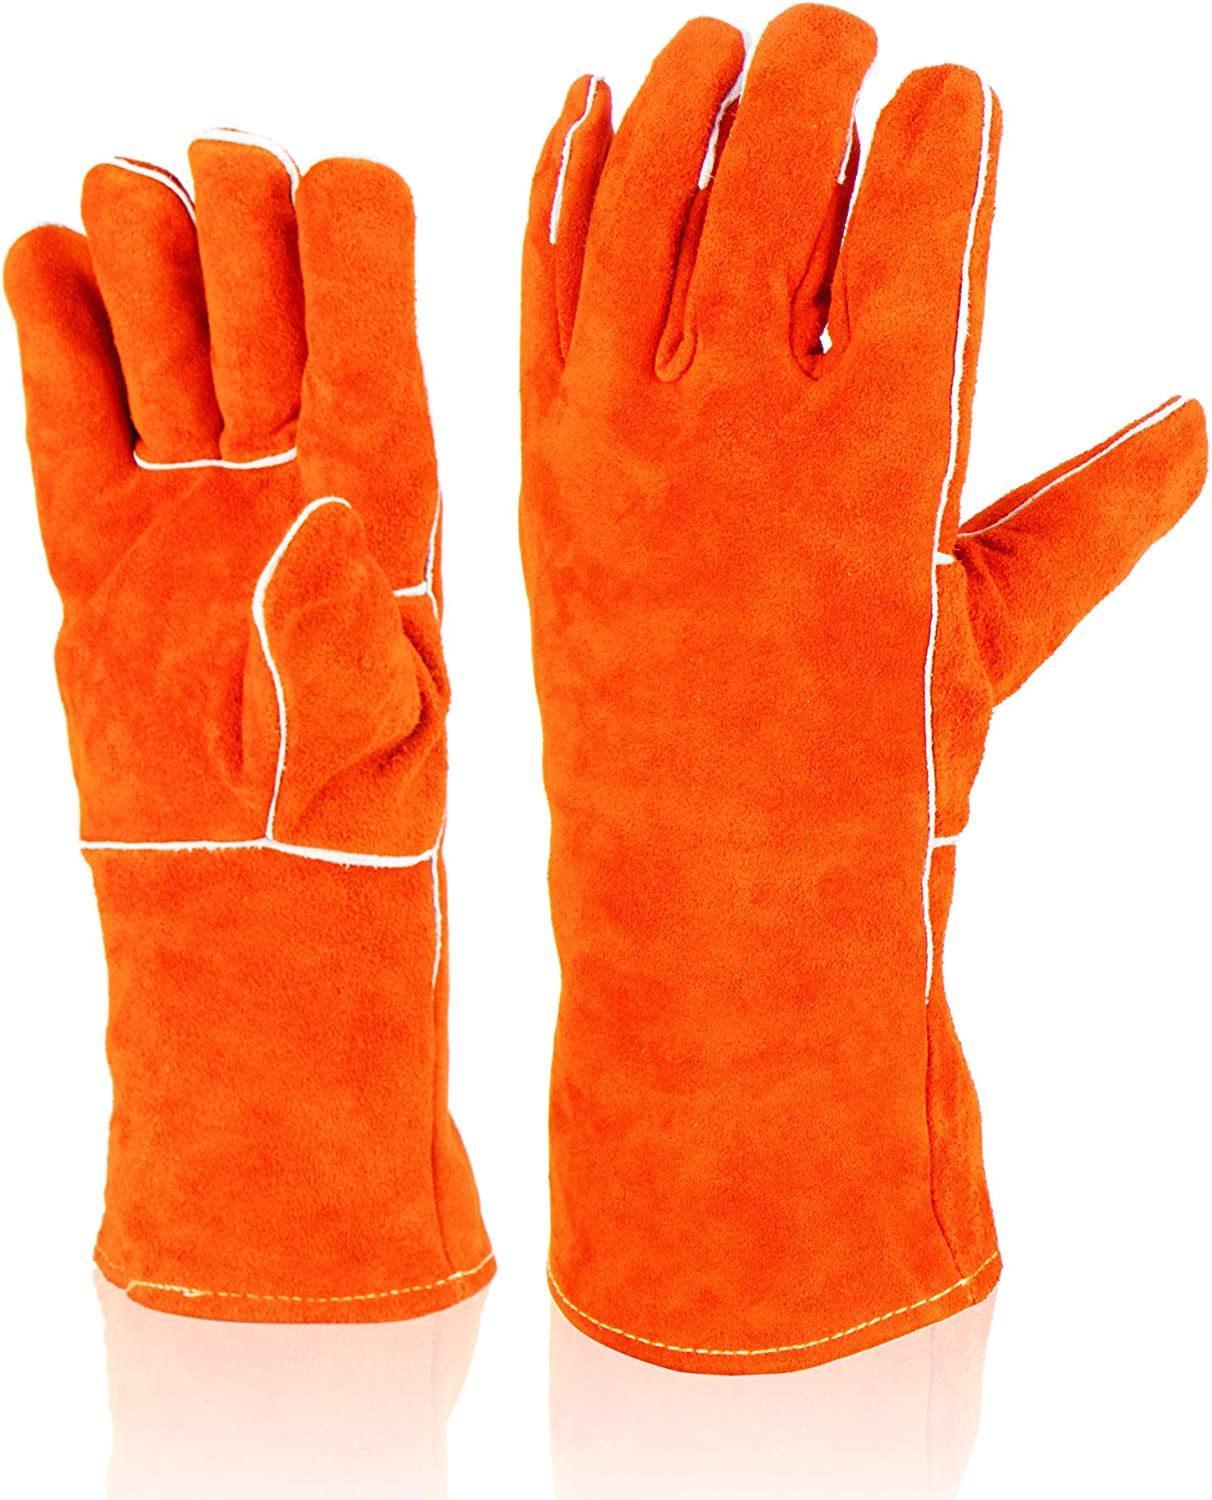 Heat Resistant Cut Gloves Work Price reduction Oven Max 64% OFF Welding Grill BBQ